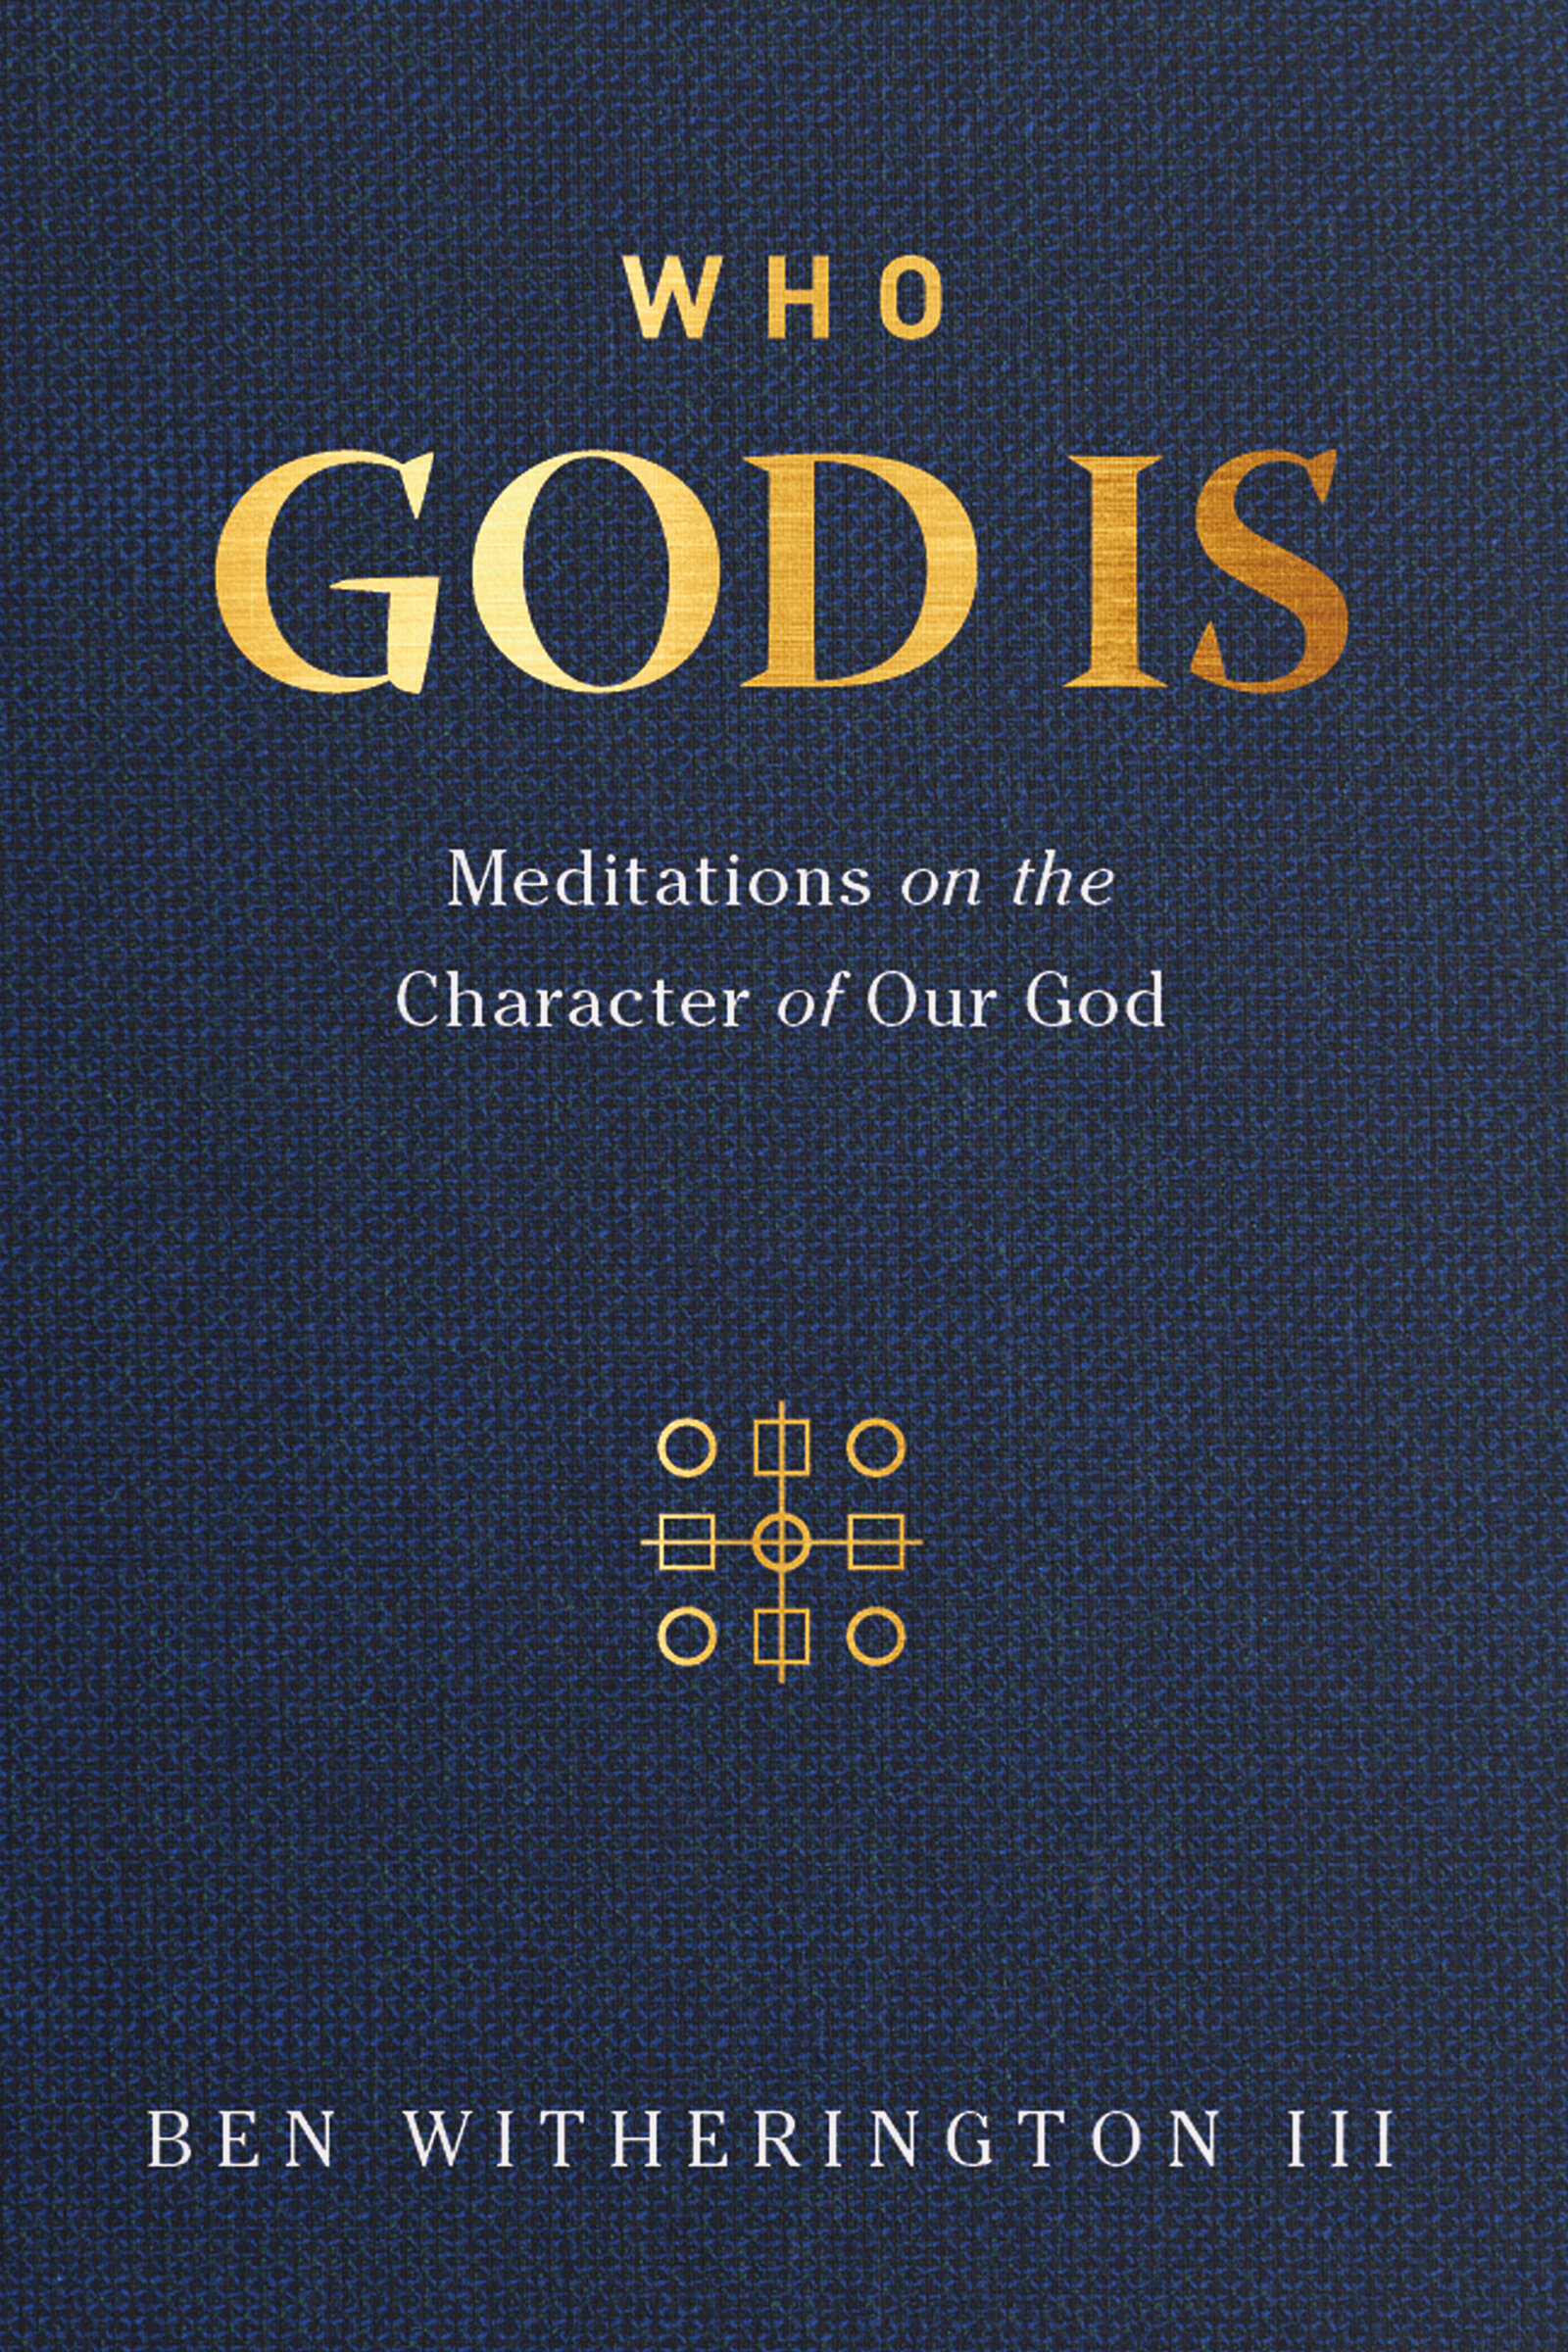 Who God Is: Meditations on the Character of Our God